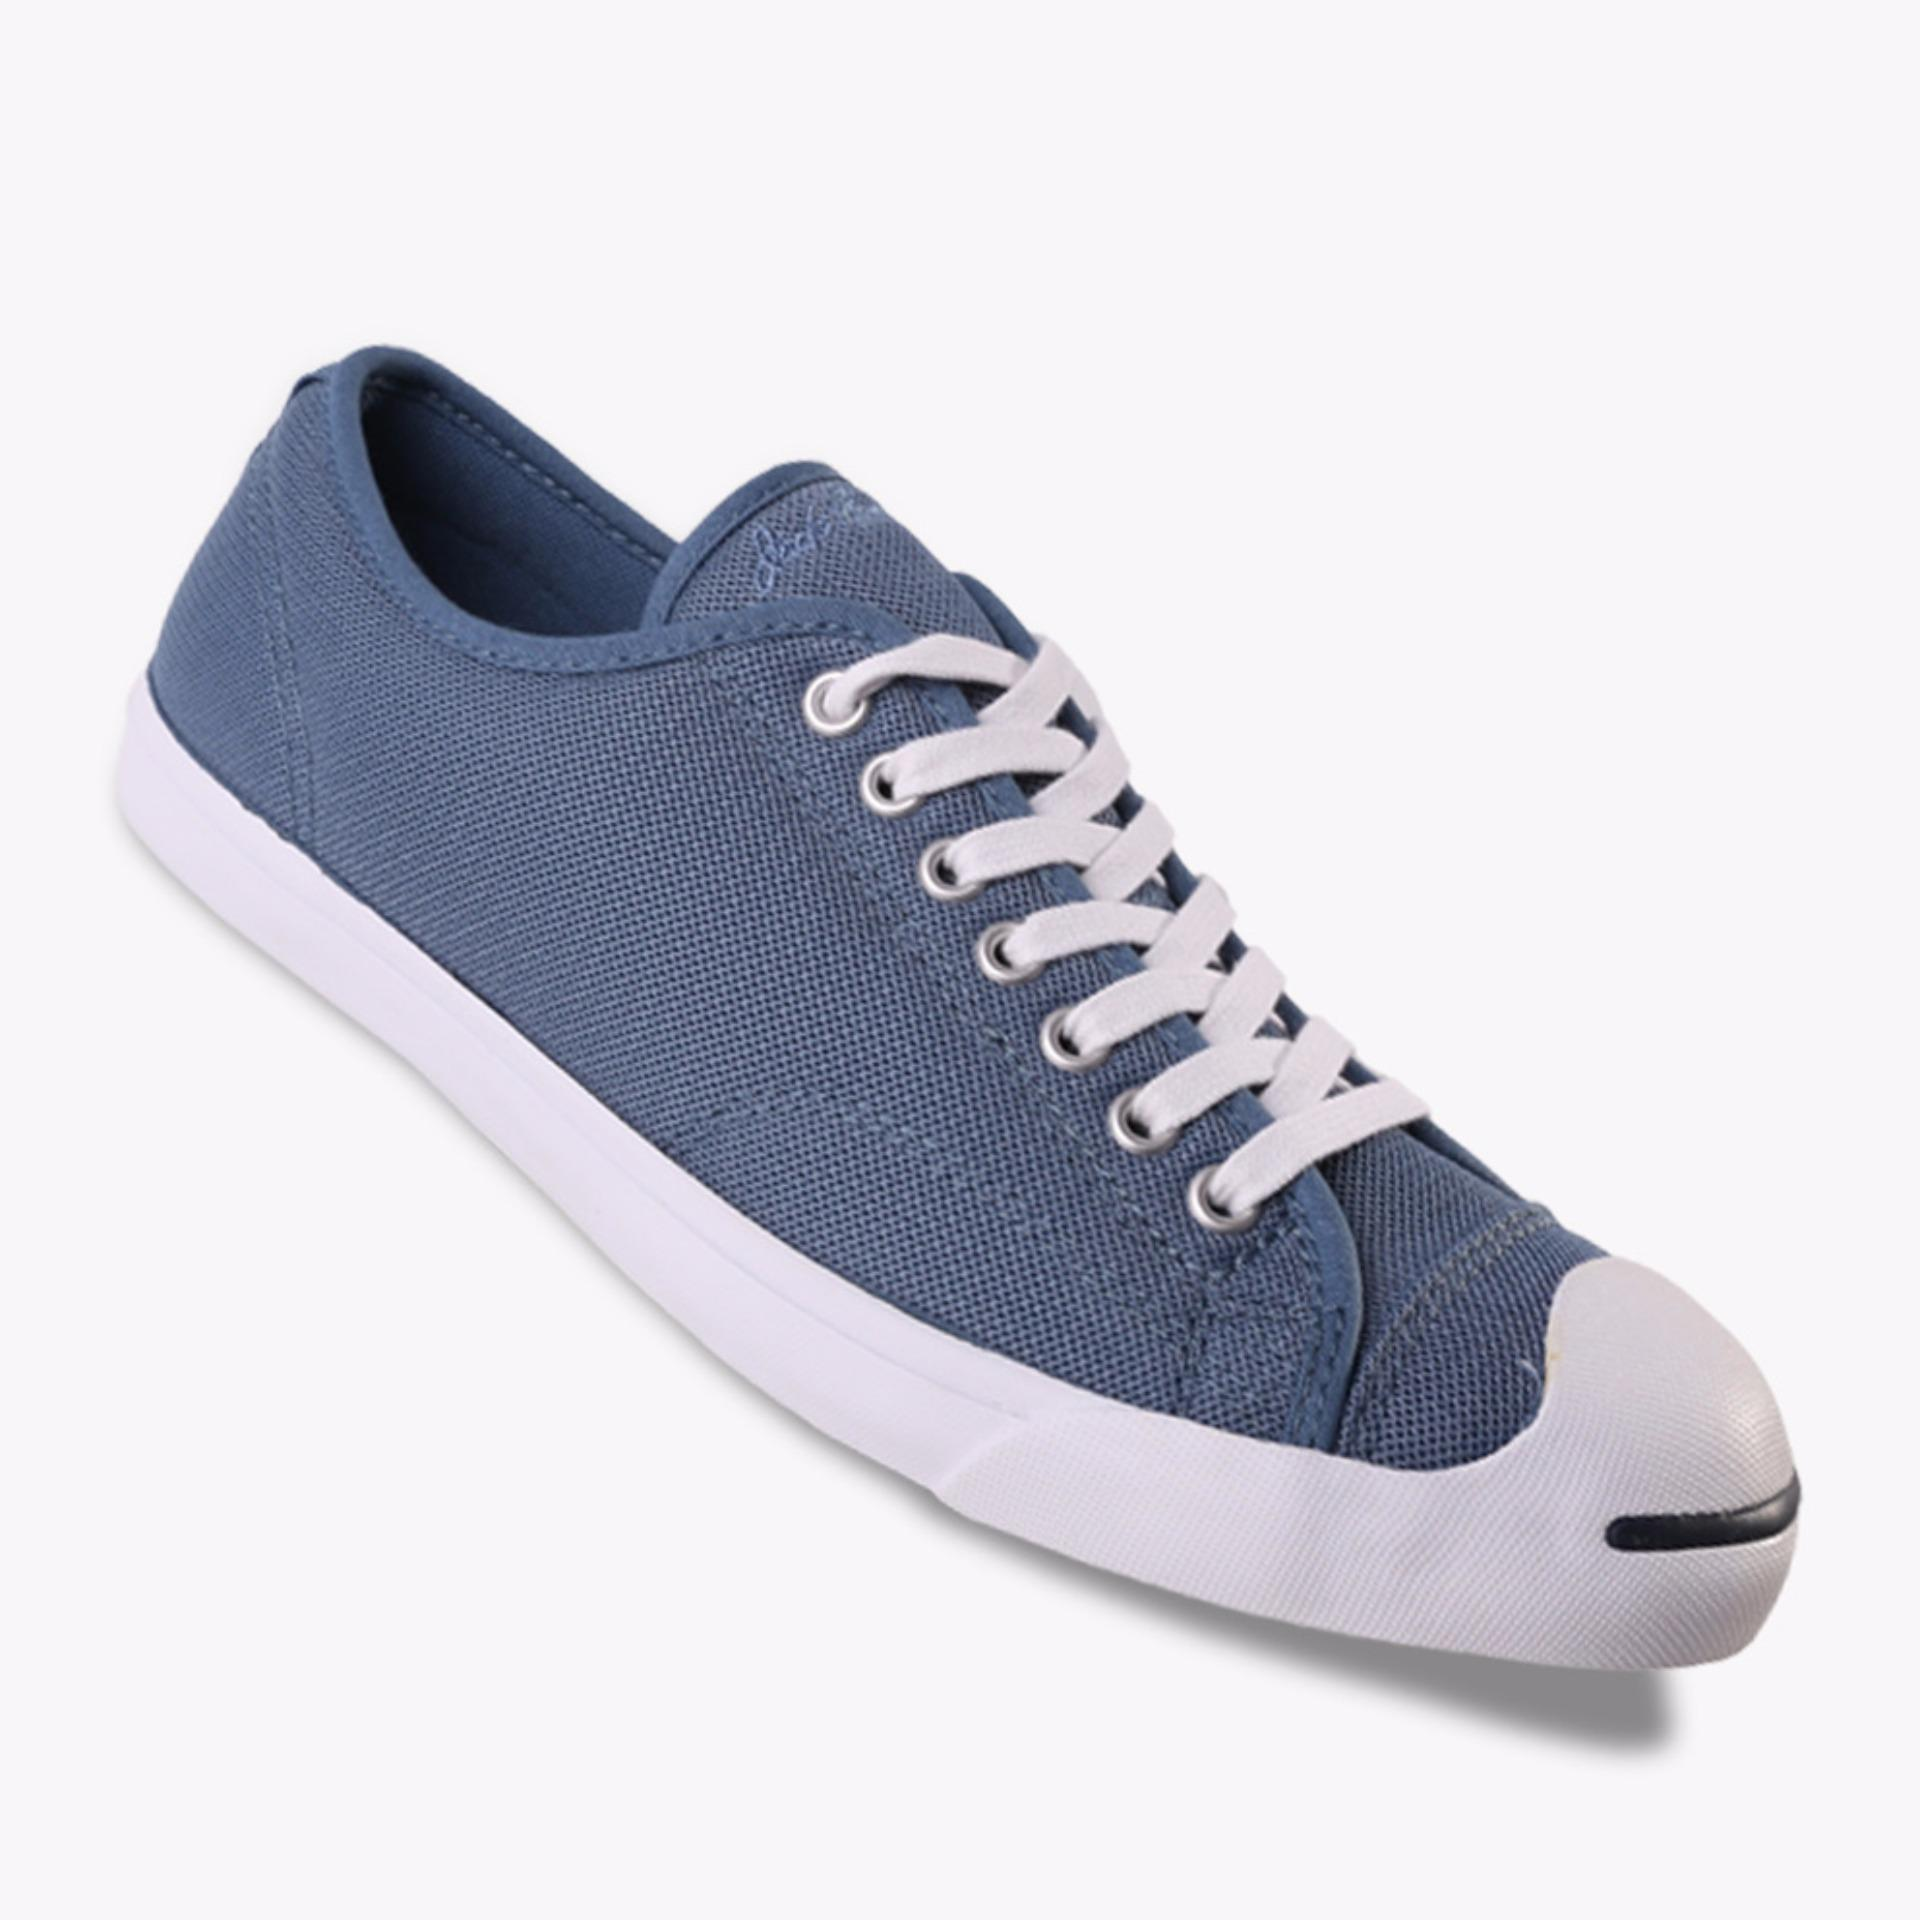 Harga Converse Jack Purcell Lp Ox Men S Sneakers Shoes Biru Lengkap